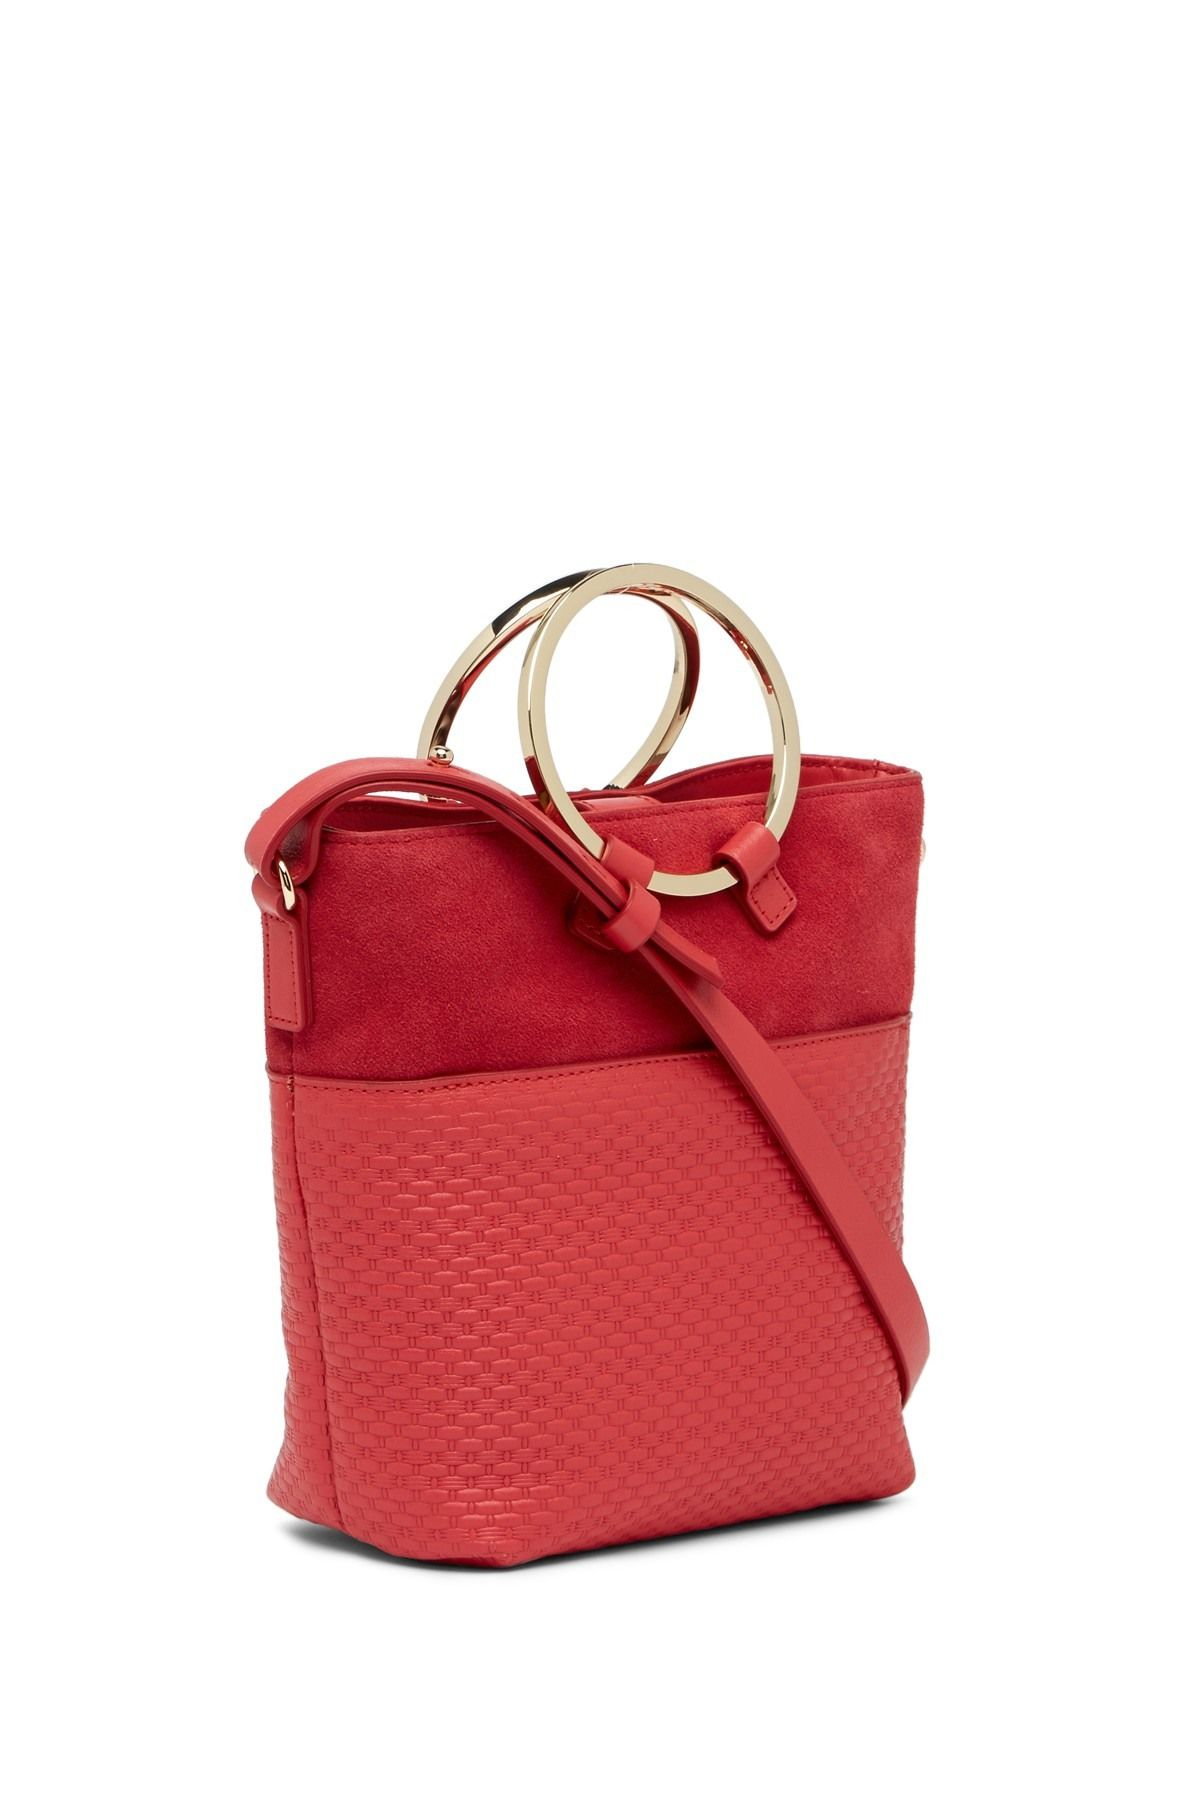 Halston Heritage - Small Embossed Leather Crossbody Bucket Bag is now 58%  off. Free Shipping on orders over  100. db0afae563250